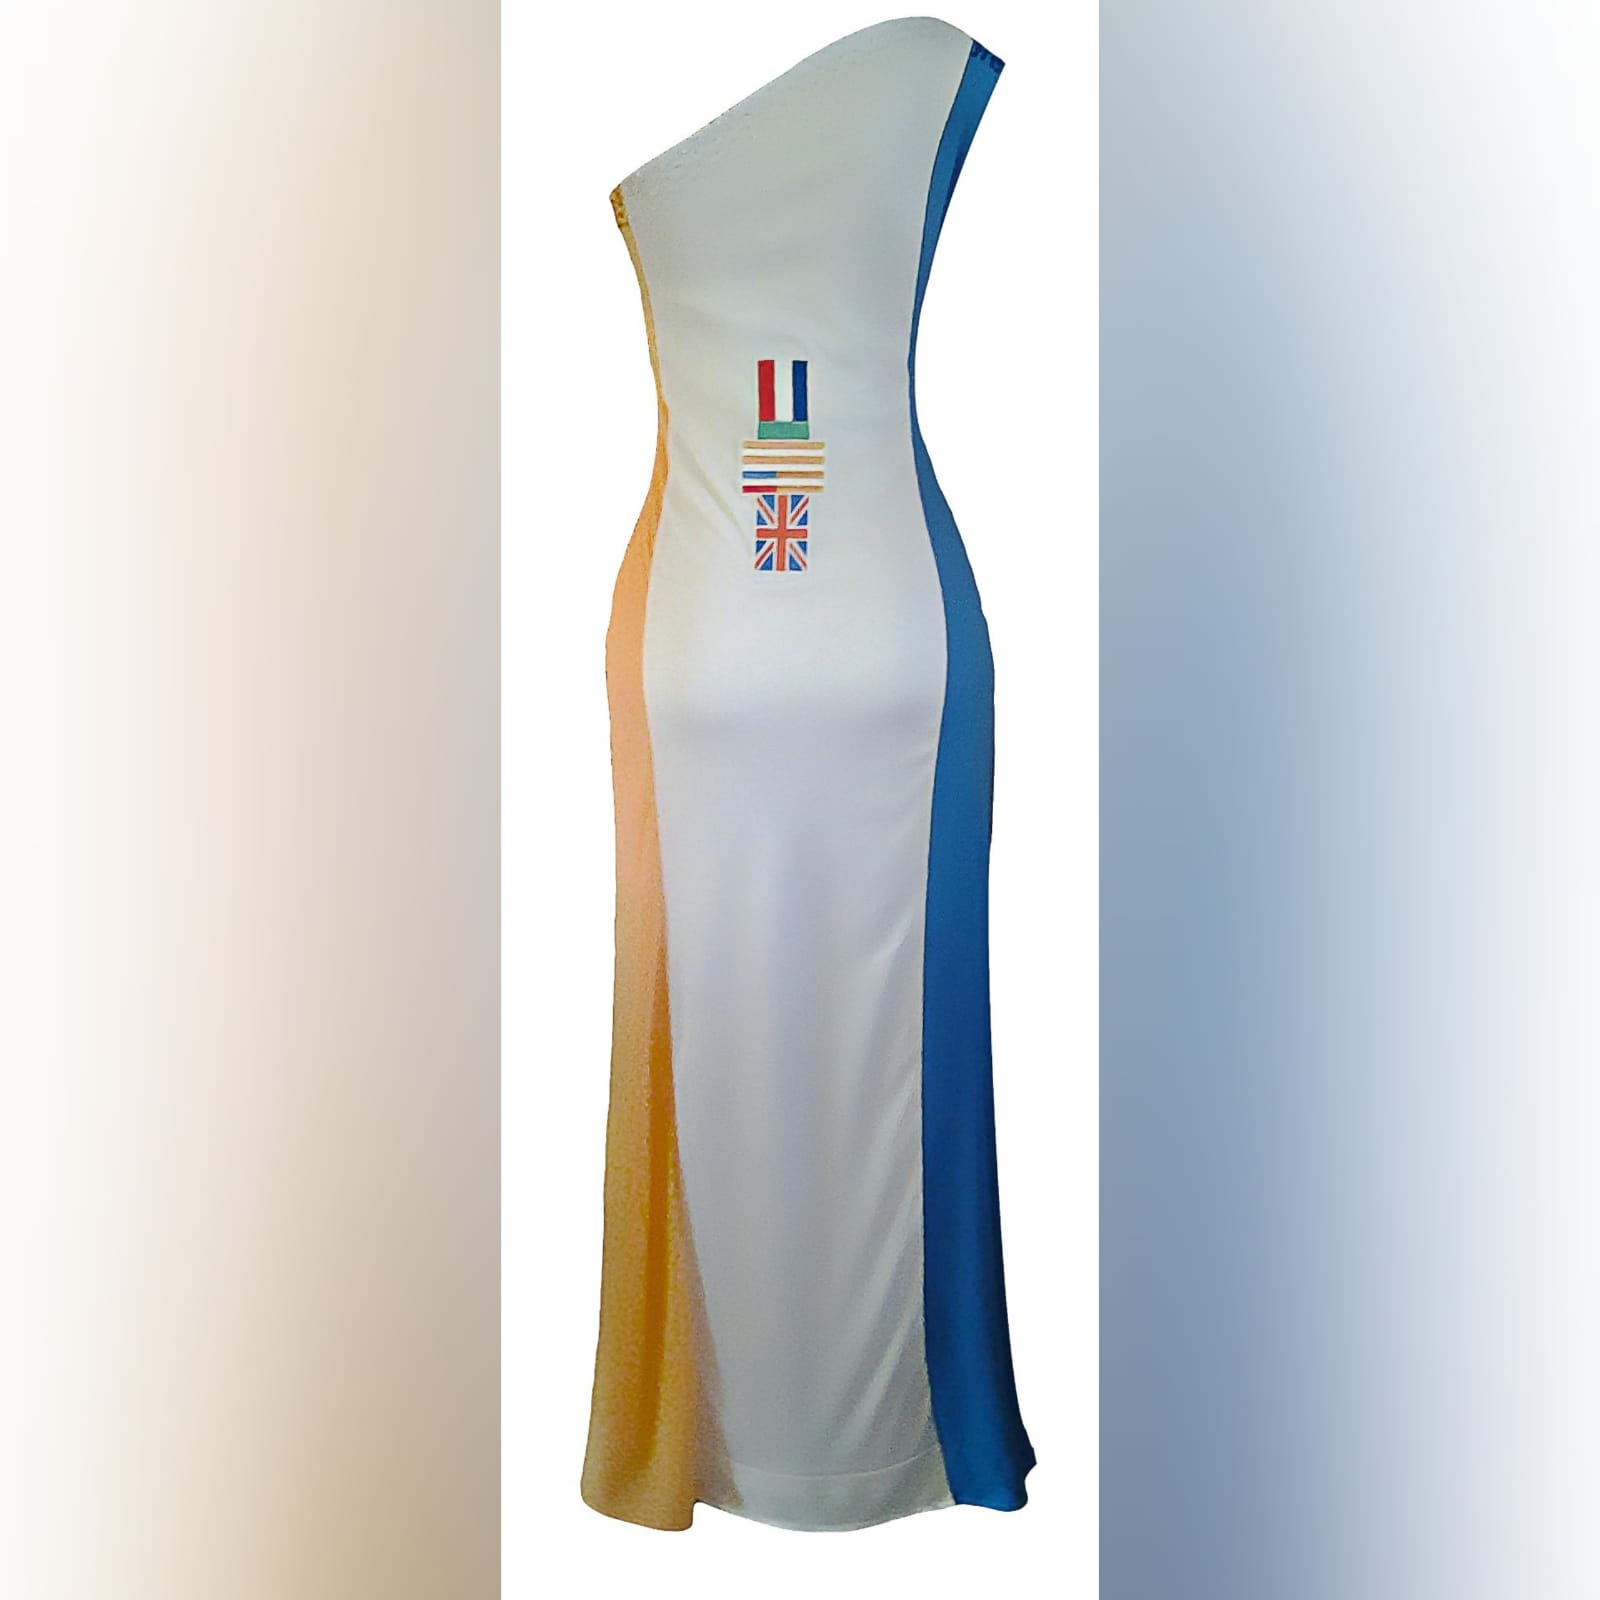 Single shoulder south african flag traditional dress 3 single shoulder south african flag traditional dress with the old flag faded design on the back and the new flag design in front with sequins and bead detail.